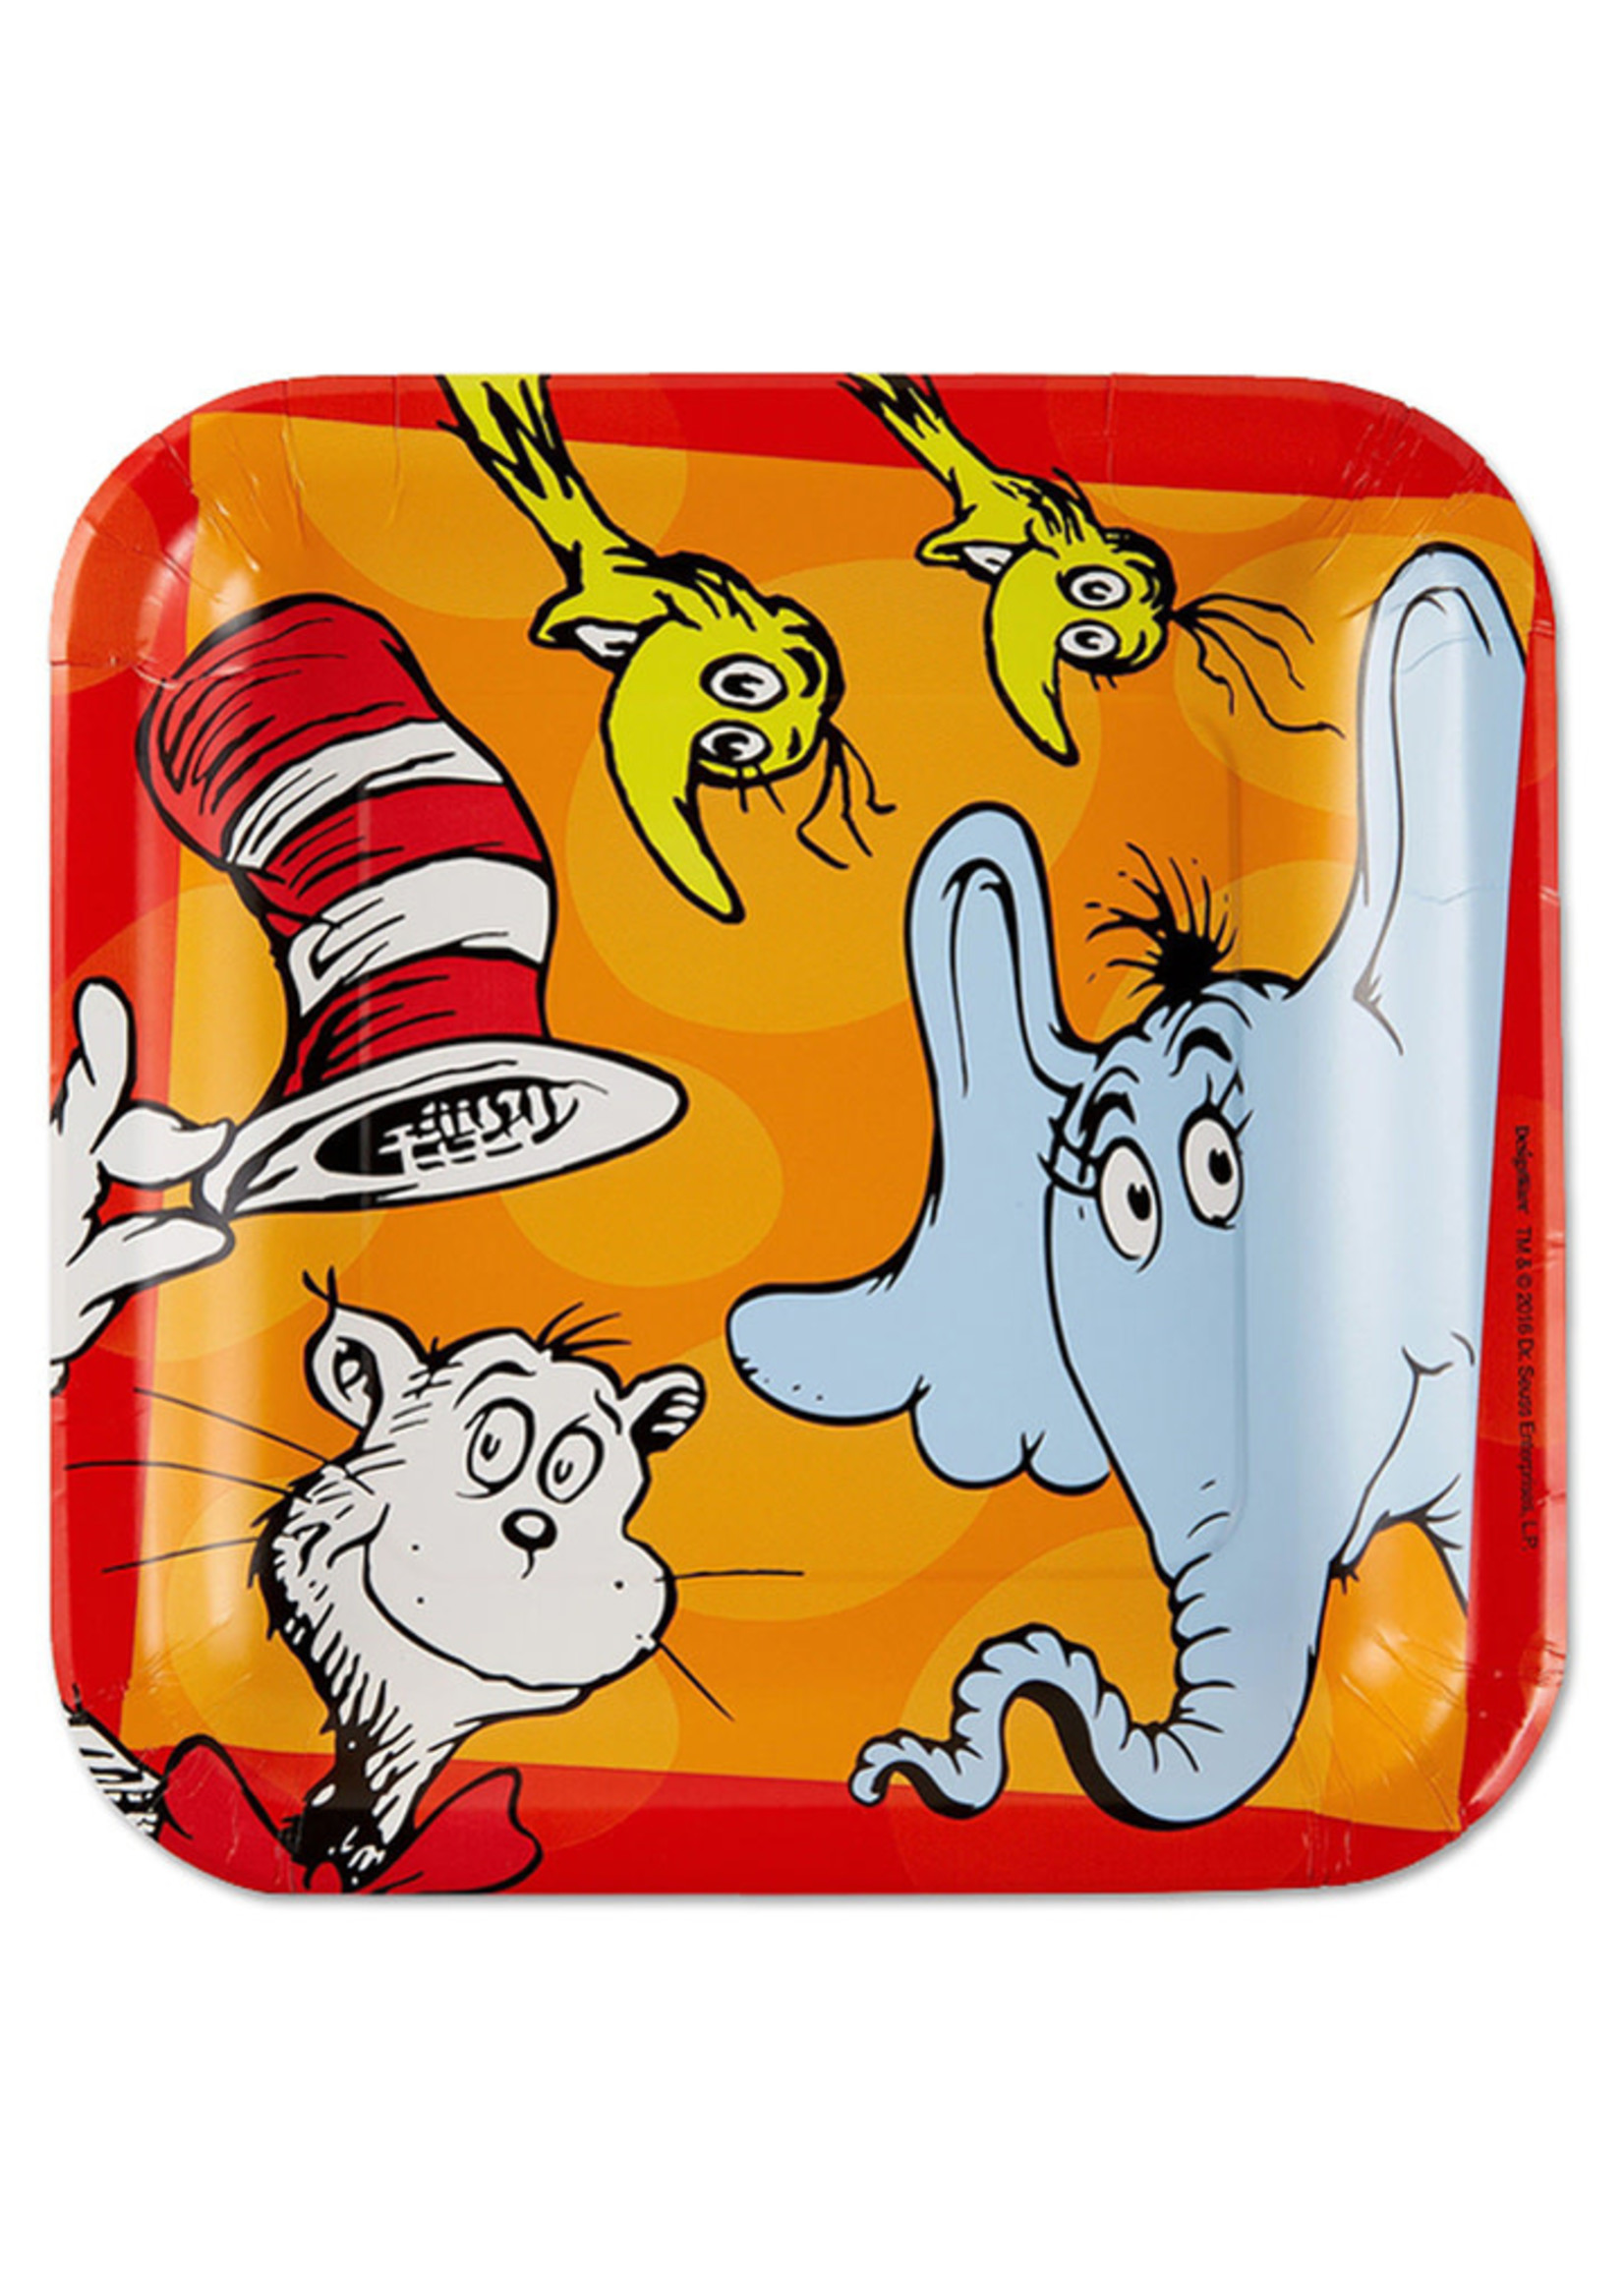 Dr. Seuss Square 9in Plates - 8ct